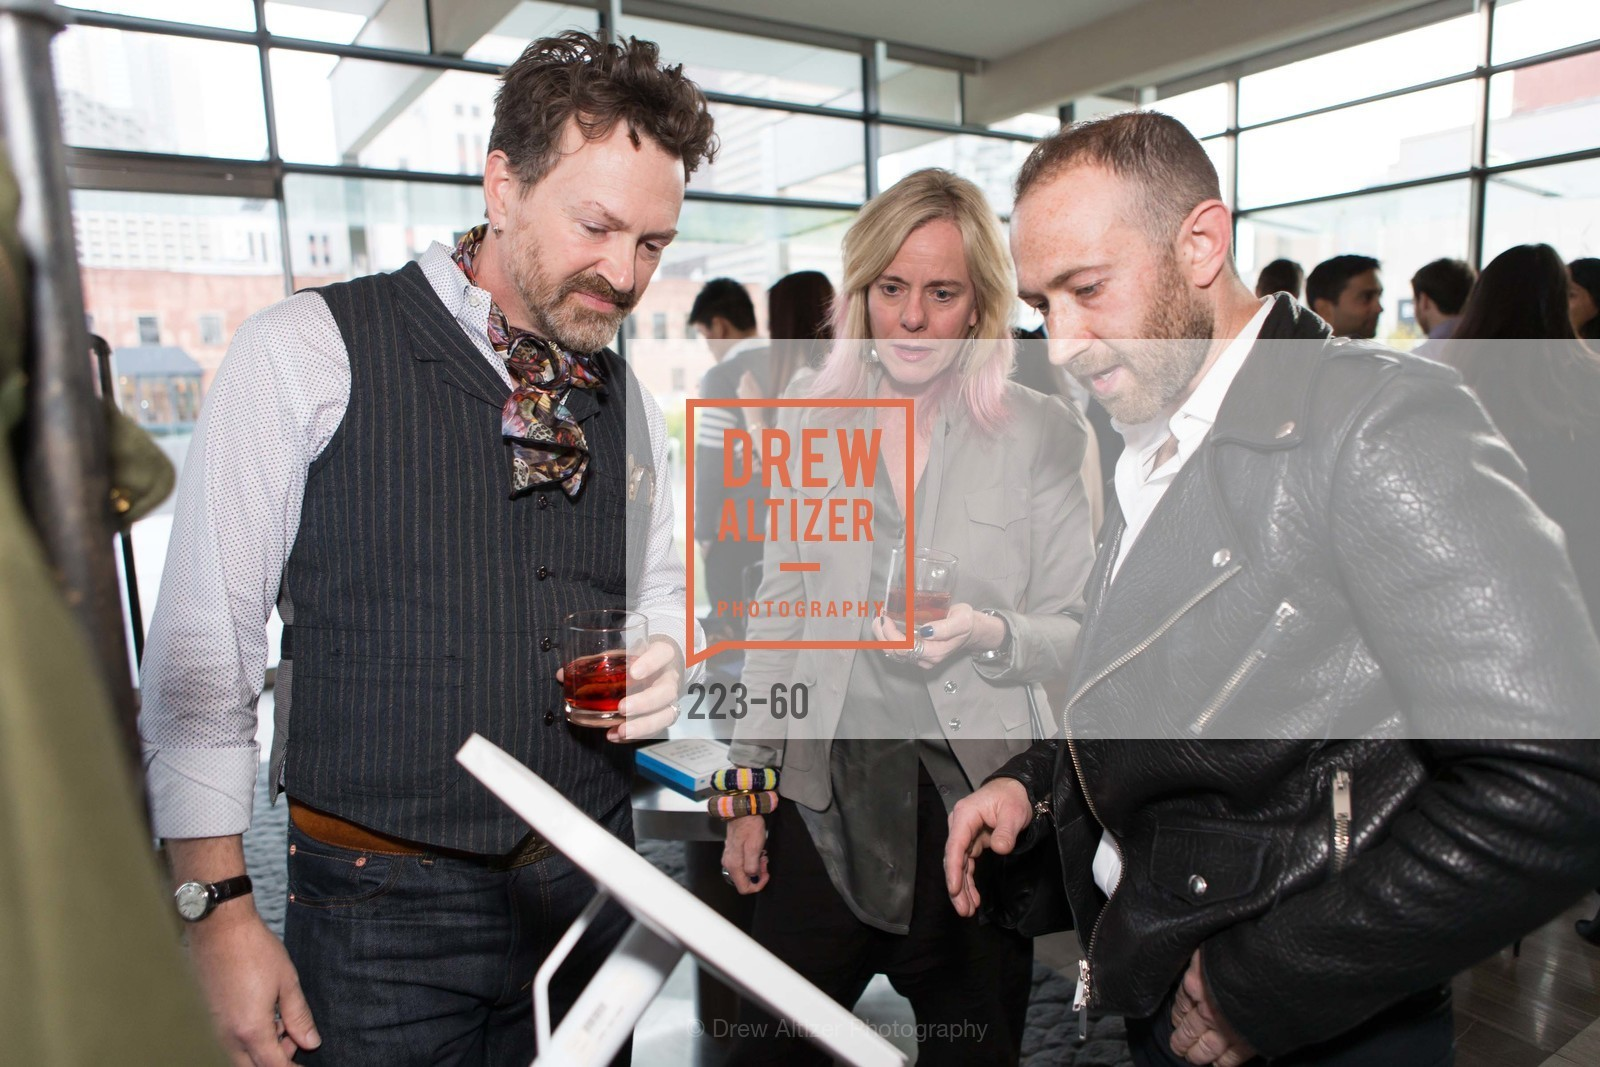 Paul D'Orleans, Susan McLaughlin, MR PORTER Celebrate The San Francisco Issue of The Journal, The Battery Rooftop - The Battery SF, April 23rd, 2015,Drew Altizer, Drew Altizer Photography, full-service agency, private events, San Francisco photographer, photographer california